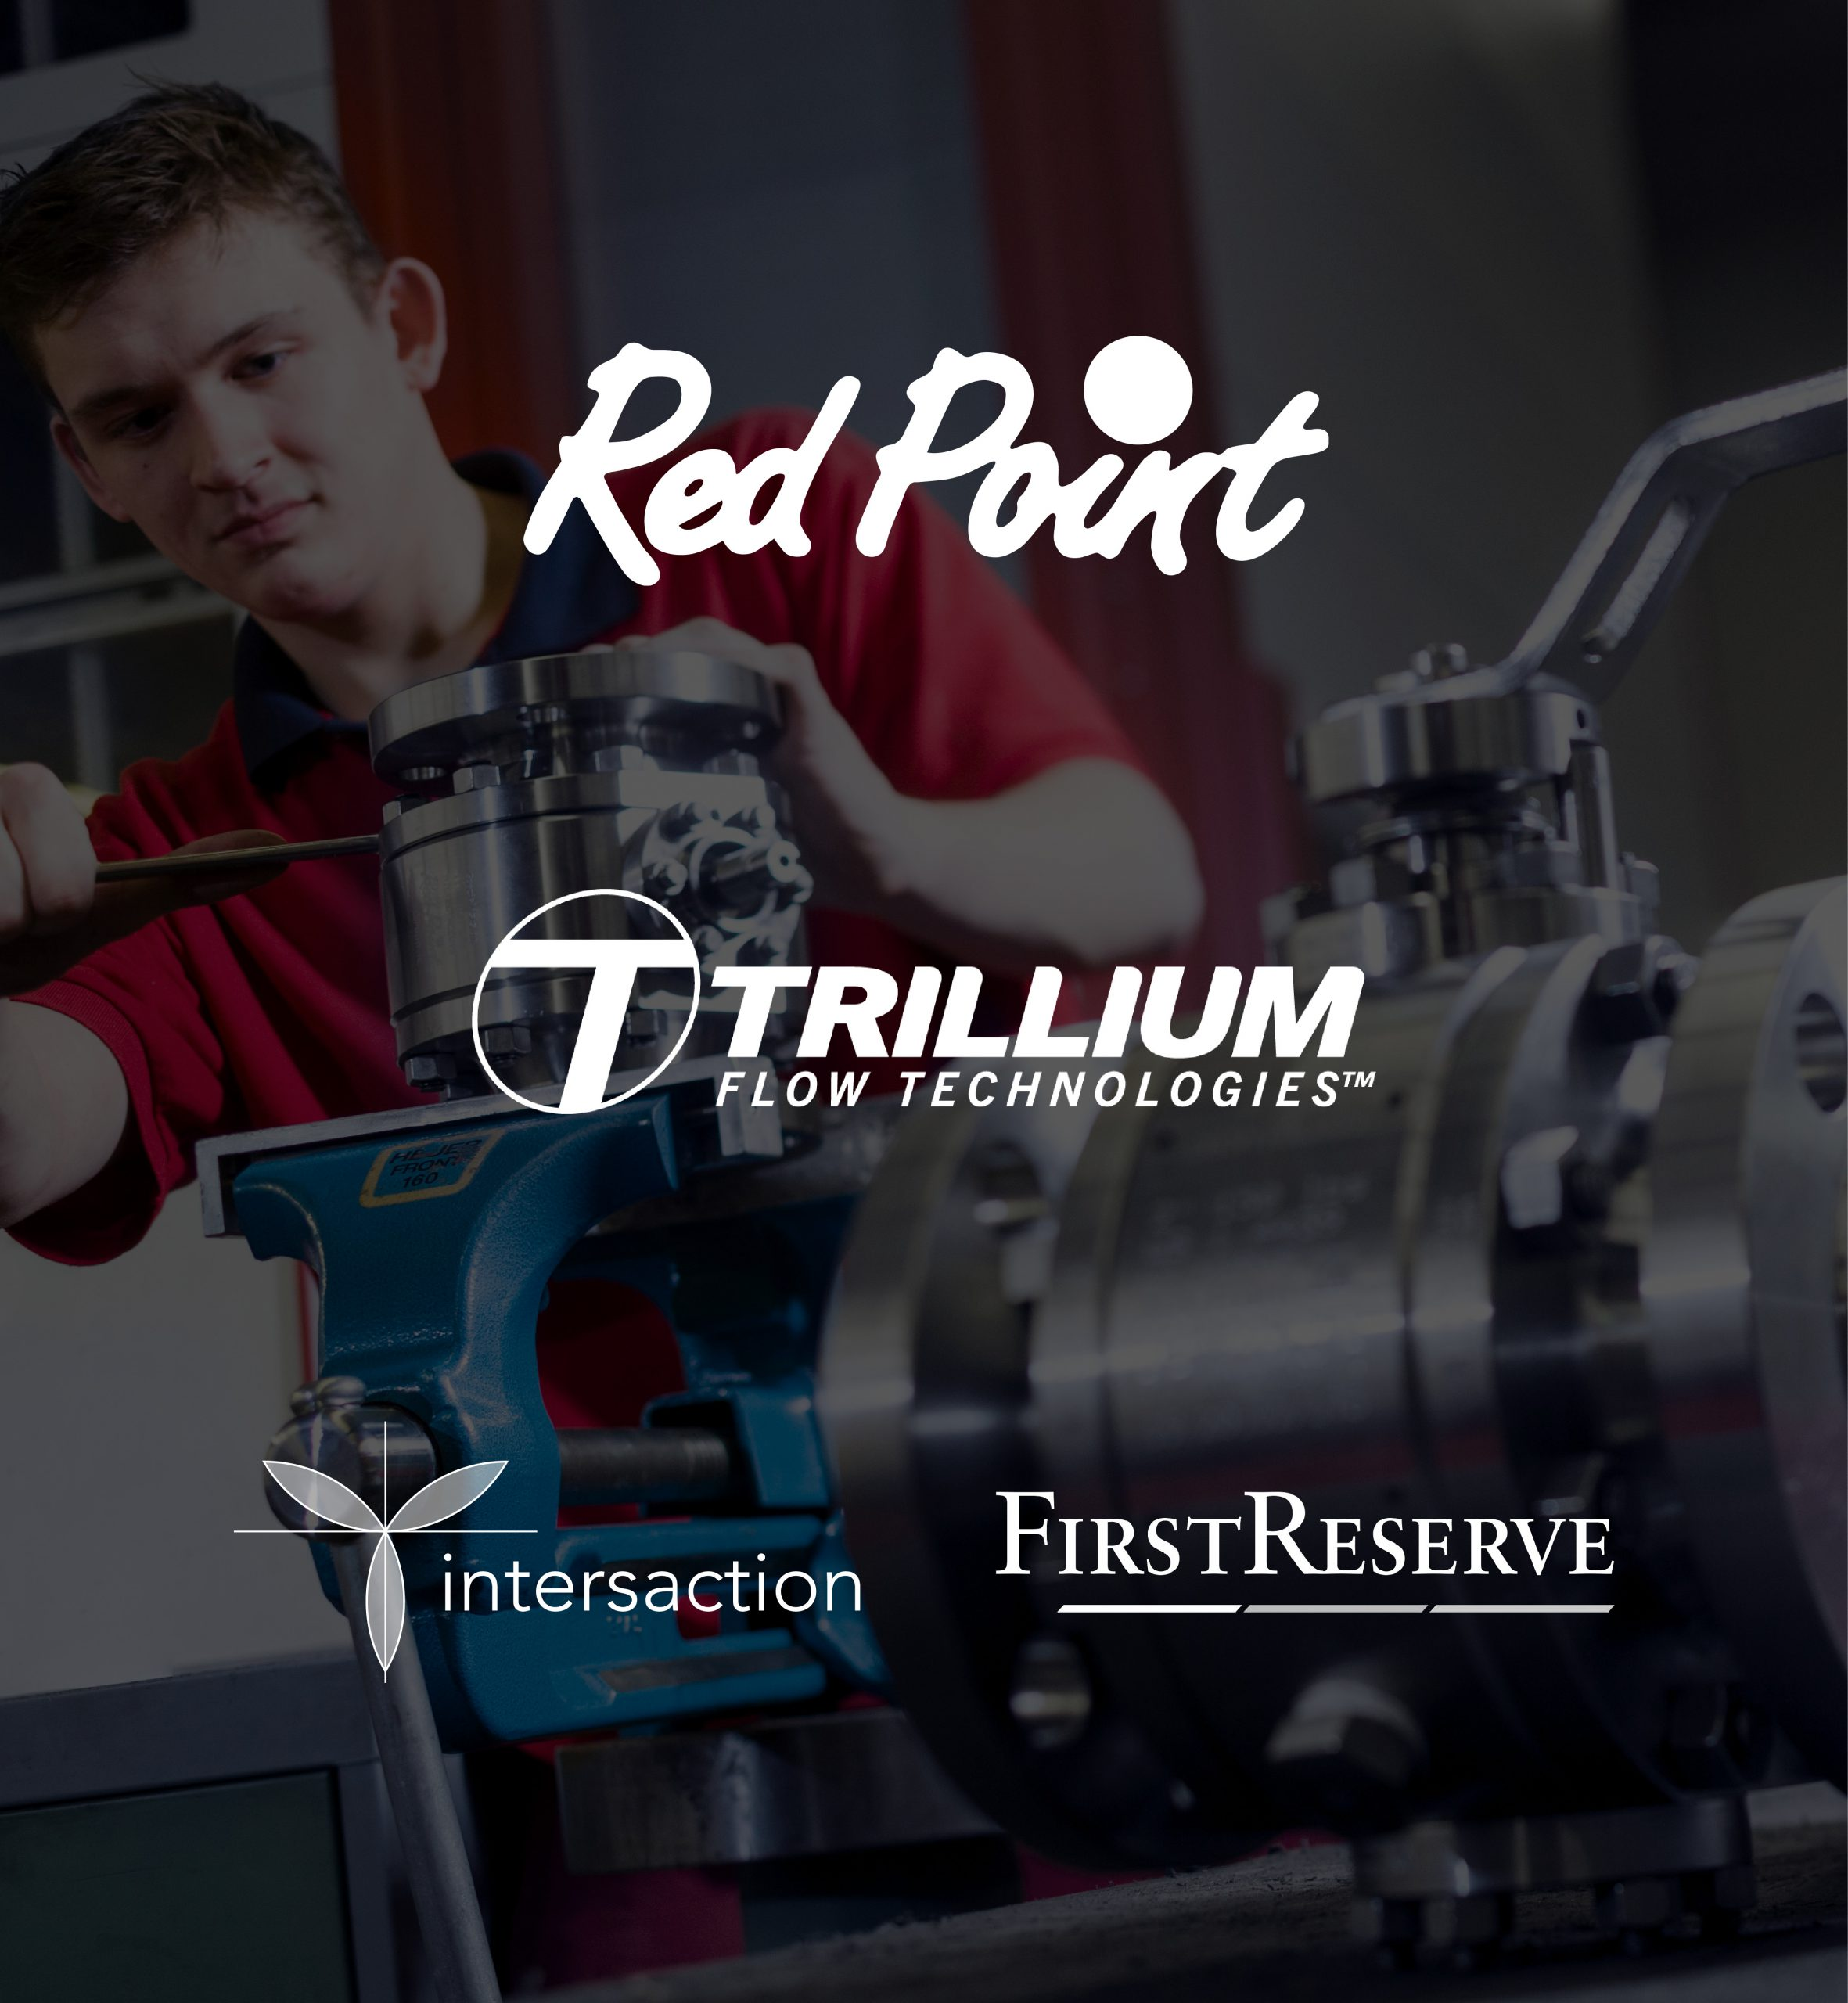 DEX international M&A advised Red Point Alloys on the sale to Trillium Flow Technologies